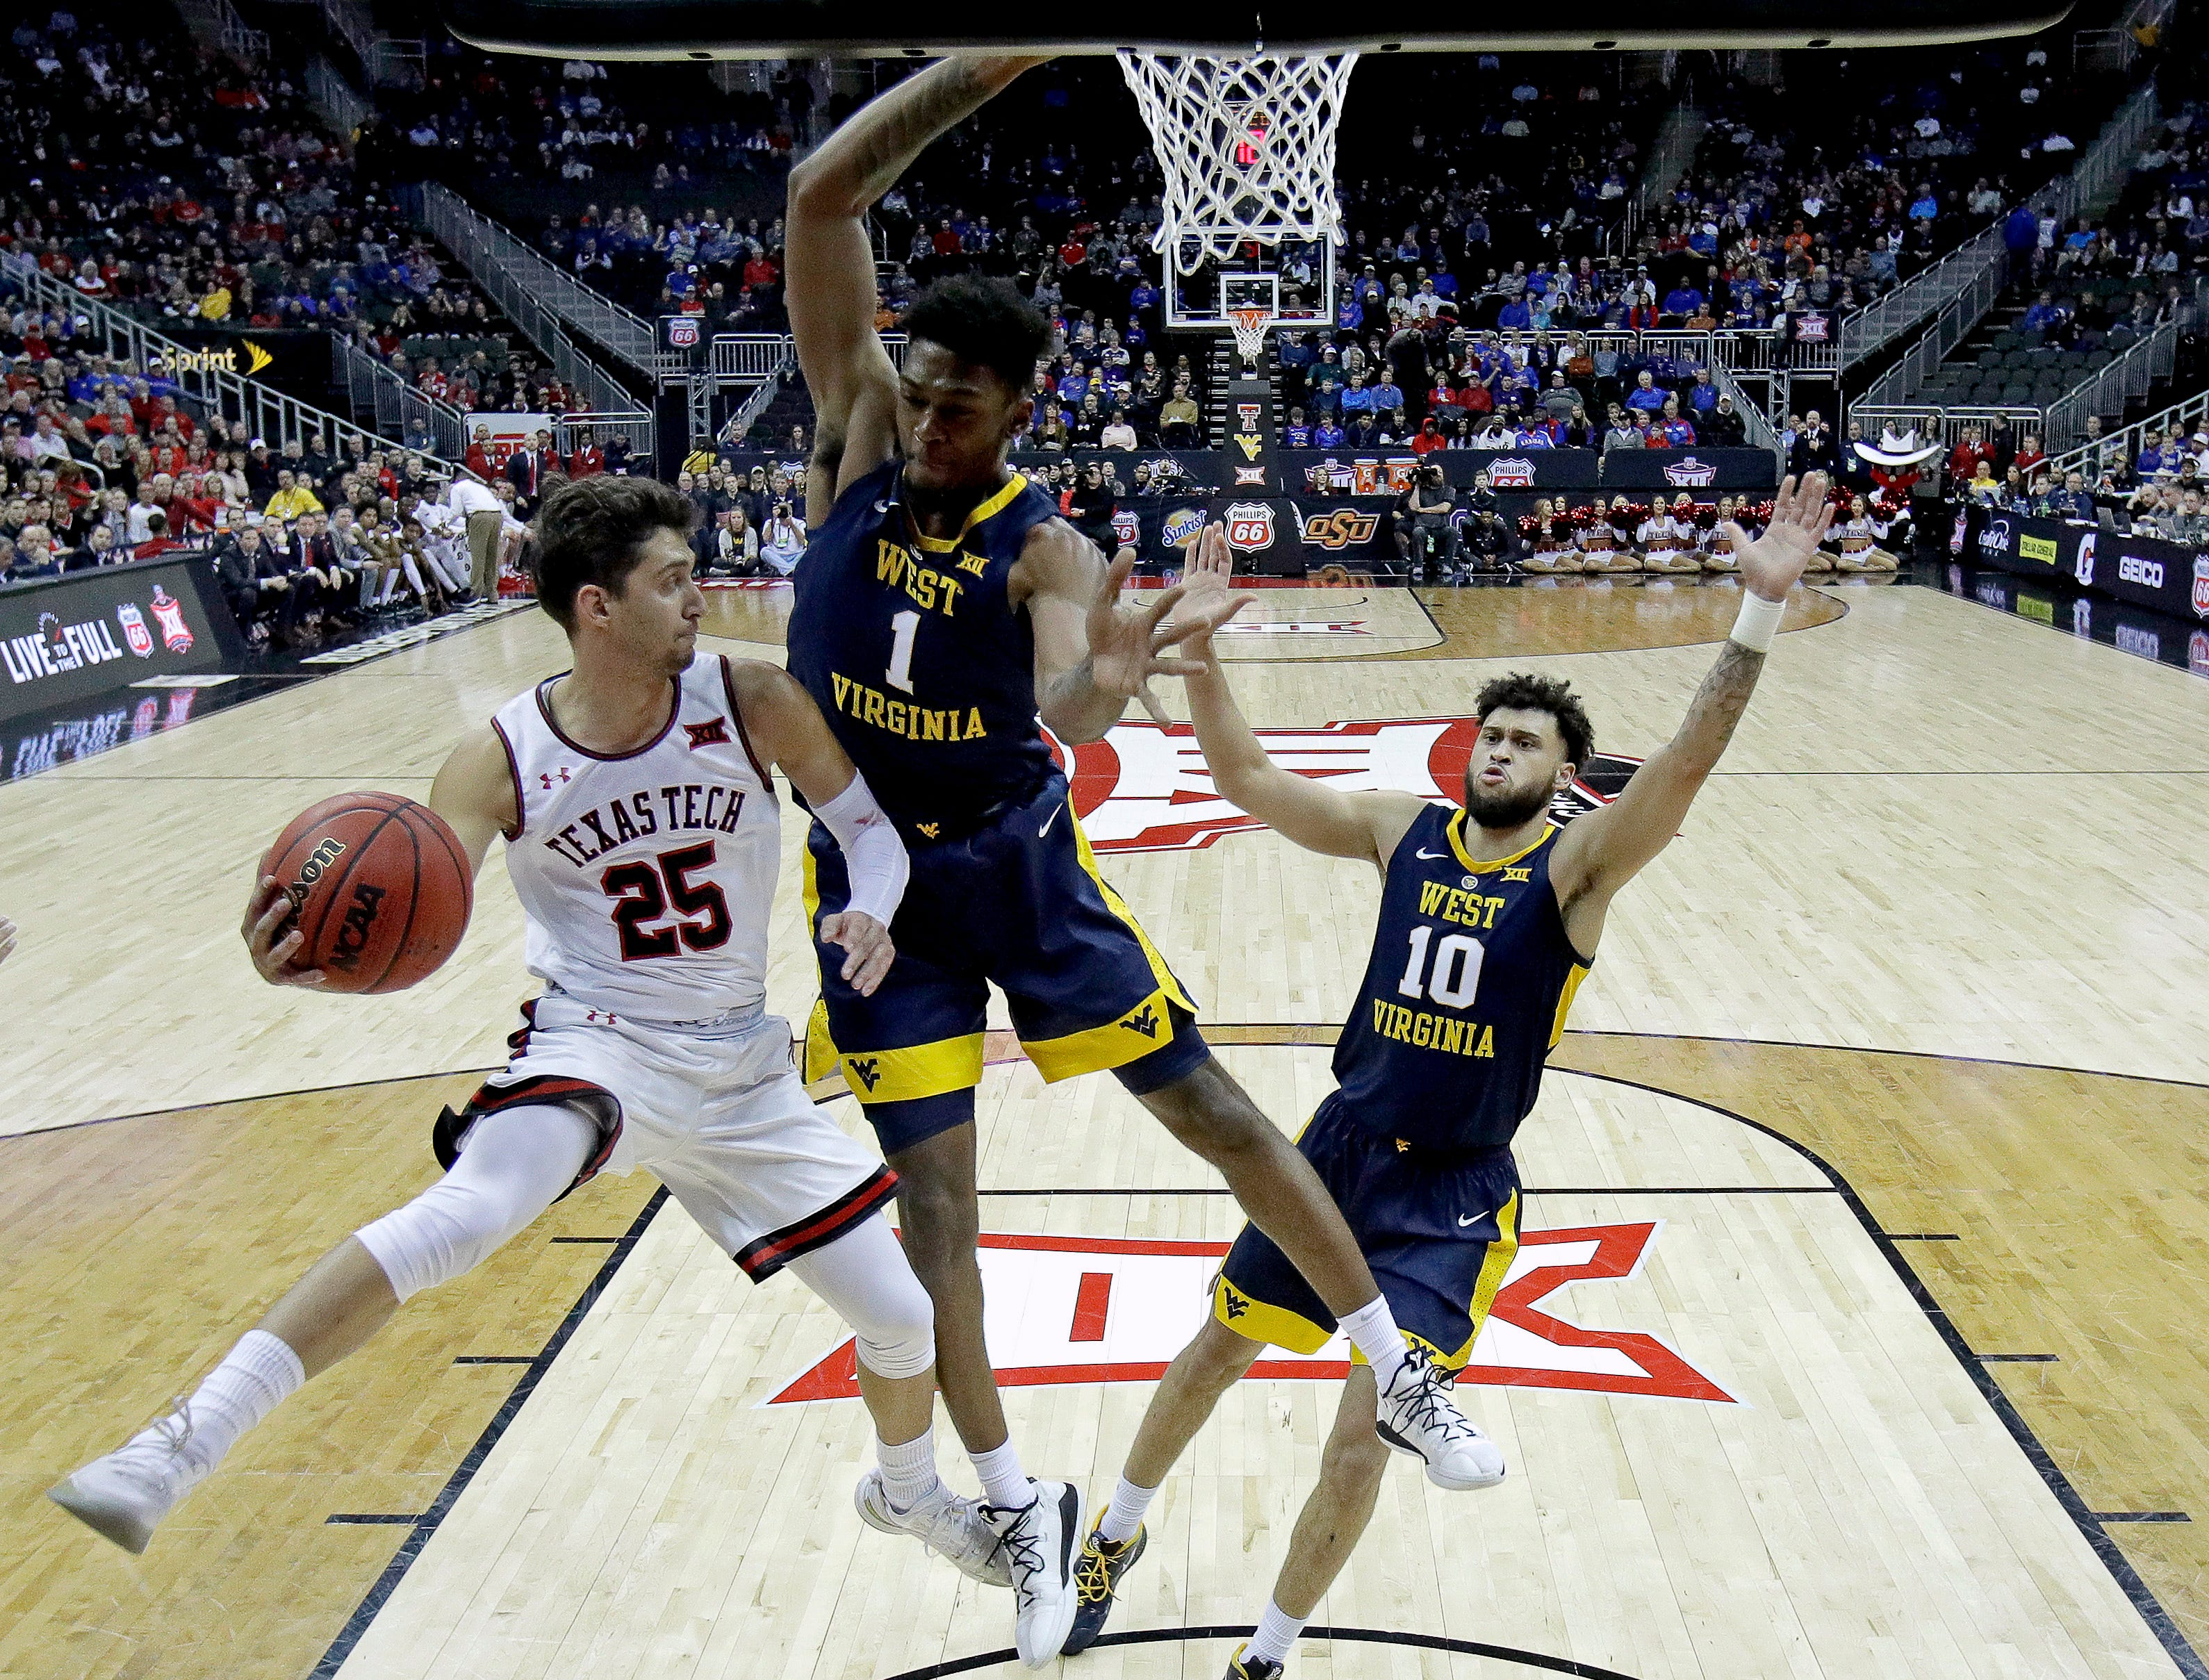 Texas Tech's Davide Moretti (25) passes the ball past West Virginia's Derek Culver (1) during the first half of an NCAA college basketball game in the Big 12 men's tournament Thursday, March 14, 2019, in Kansas City, Mo. (AP Photo/Charlie Riedel)